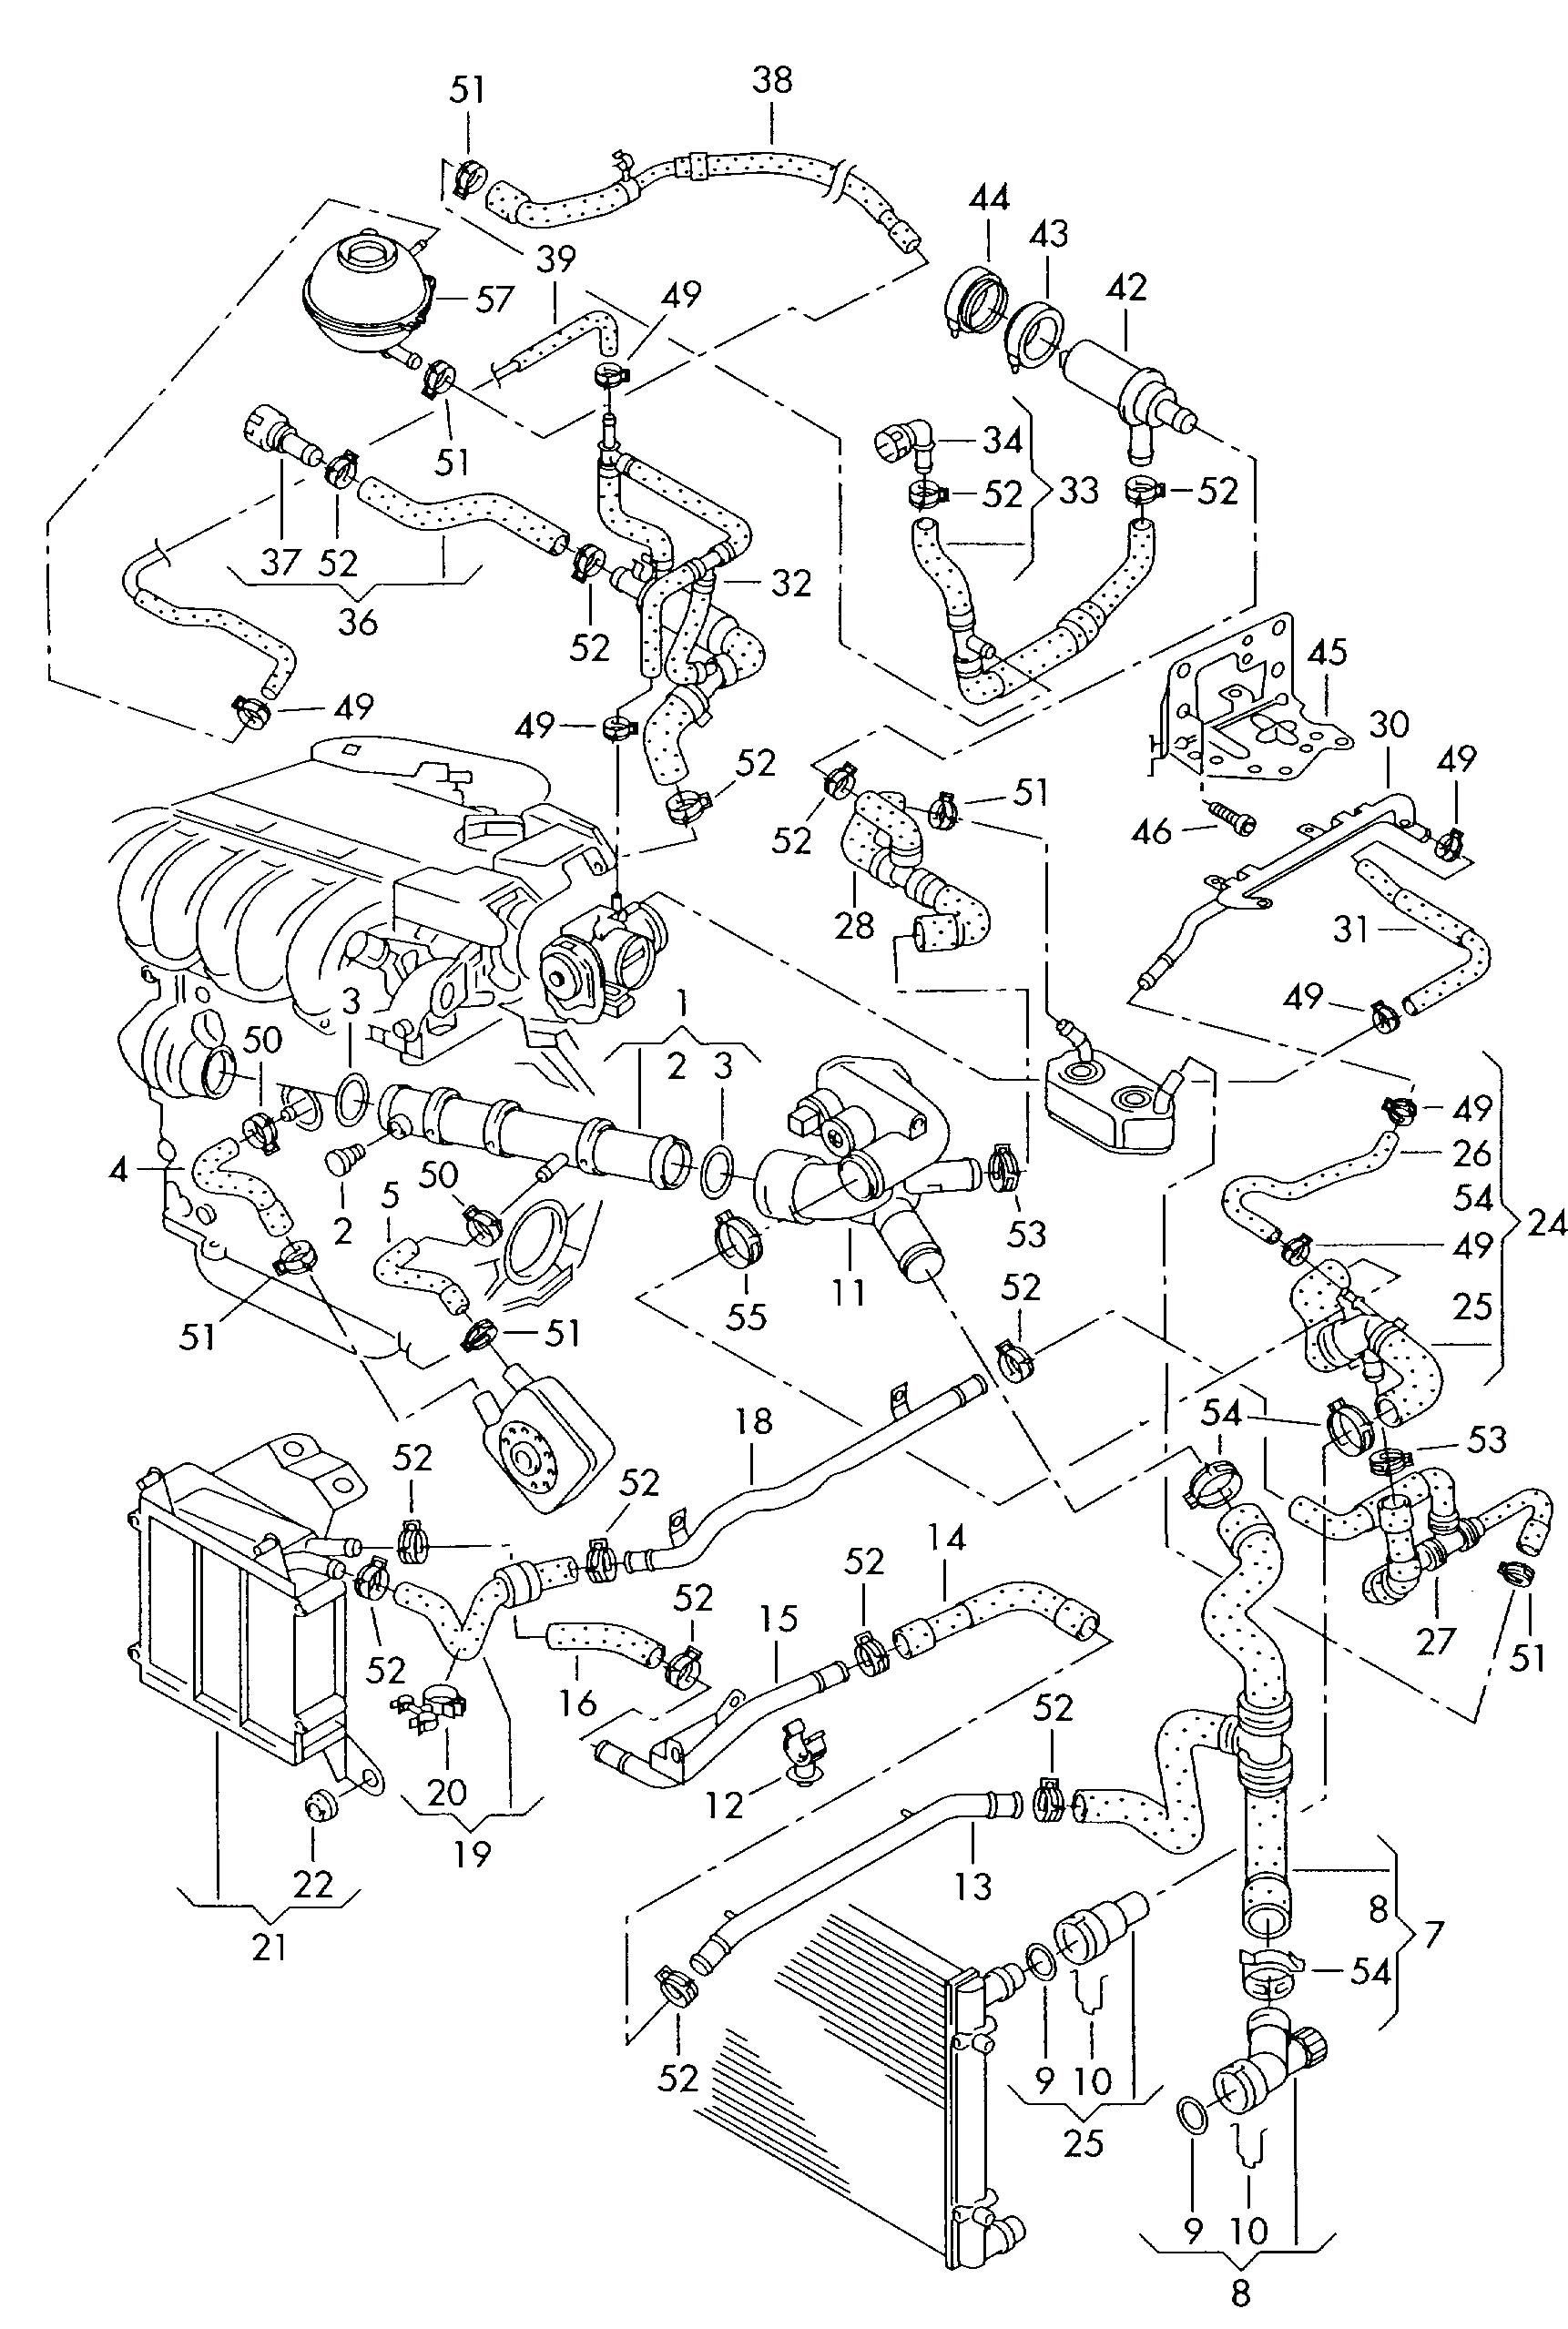 2001 Volkswagen Passat Engine Diagram 95 Jetta Engine Diagram Of 2001 Volkswagen Passat Engine Diagram Volkswagen Metra Harness Wiring Diagram Wiring Diagram Paper